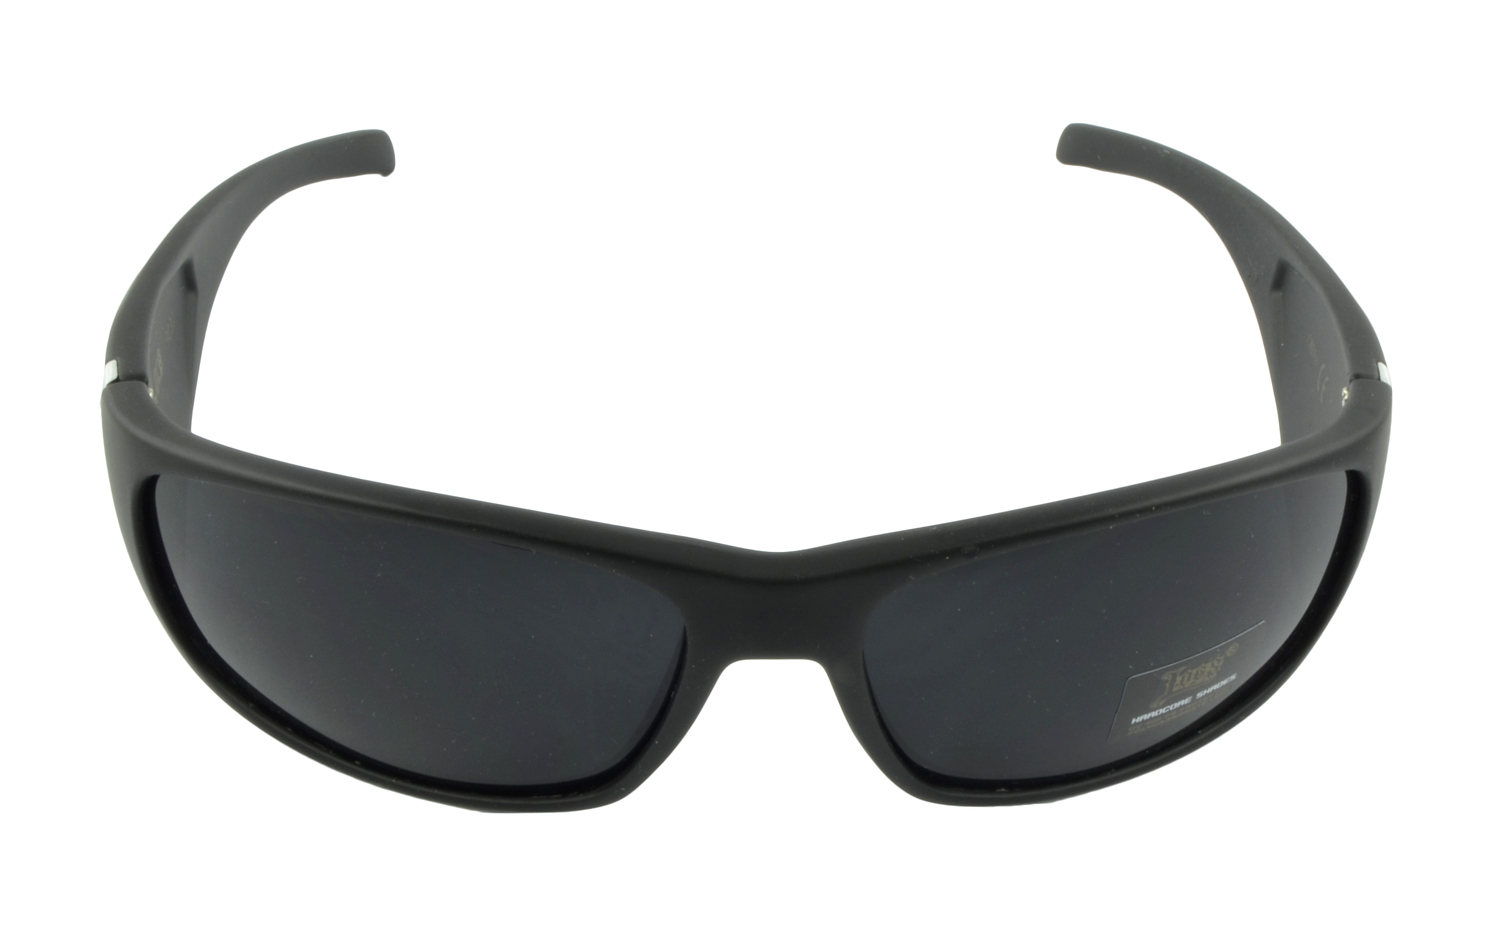 Belle Donne- Trendy Men or Women's Hardcore Dark Lens Sunglasses-Black Matte